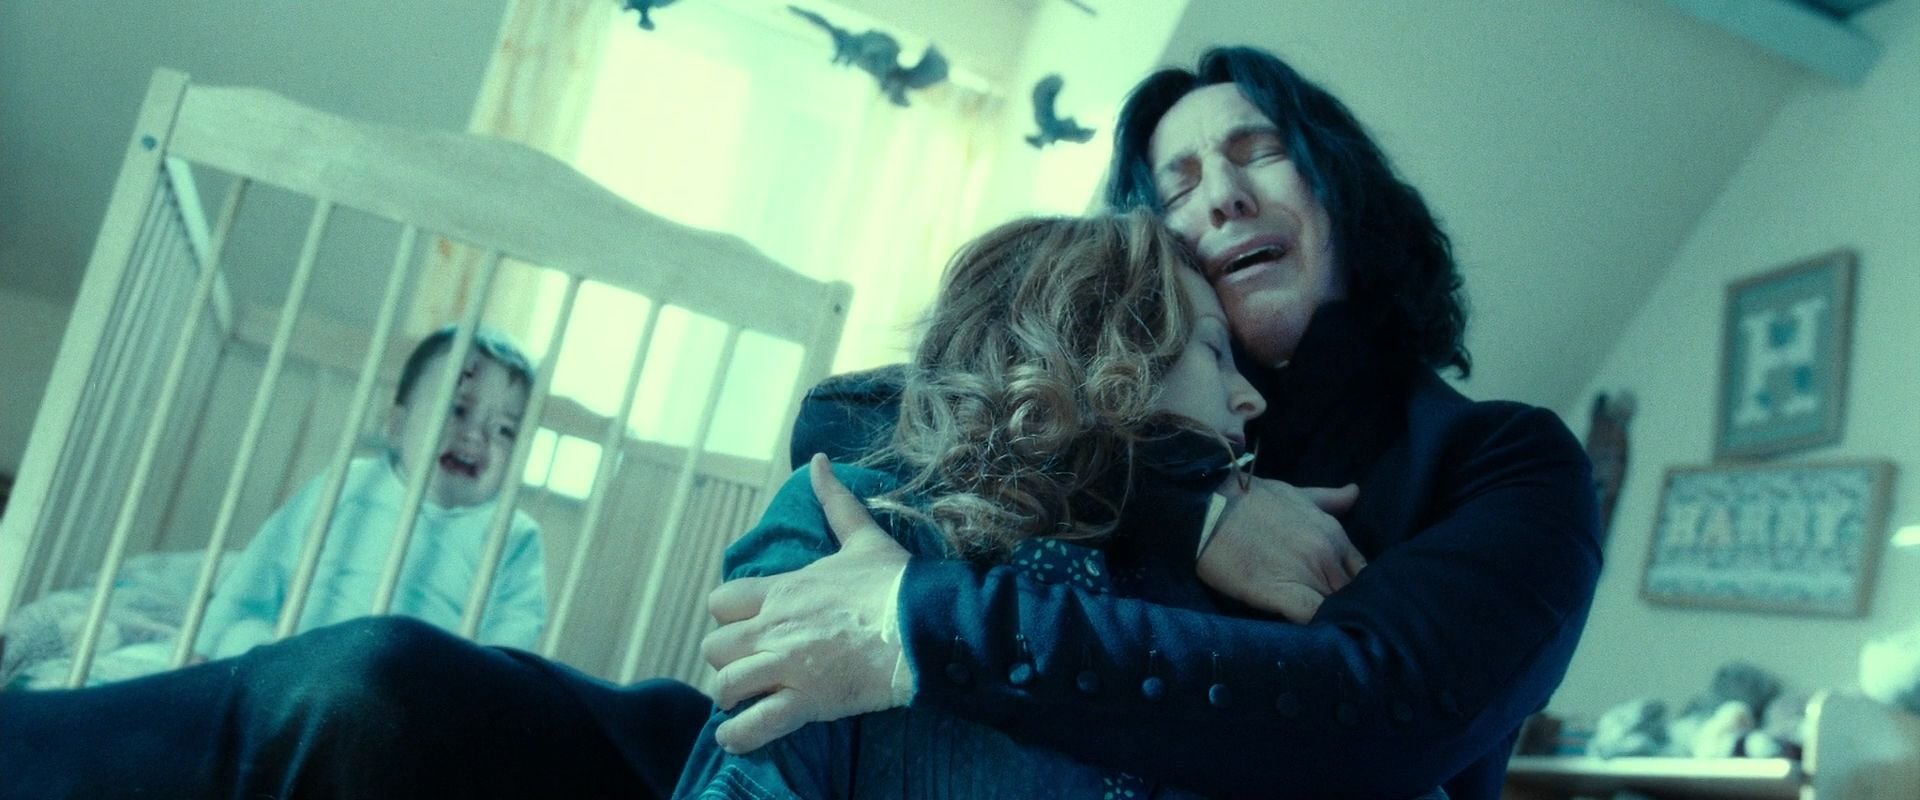 Toby Papworth as Baby Harry, Geraldine Somerville as Lilly Potter and Alan Rickman as Professor Severus Snape, HARRY POTTER AND THE DEATHLY HALLOWS PART 2 (2011). Warner Bros.